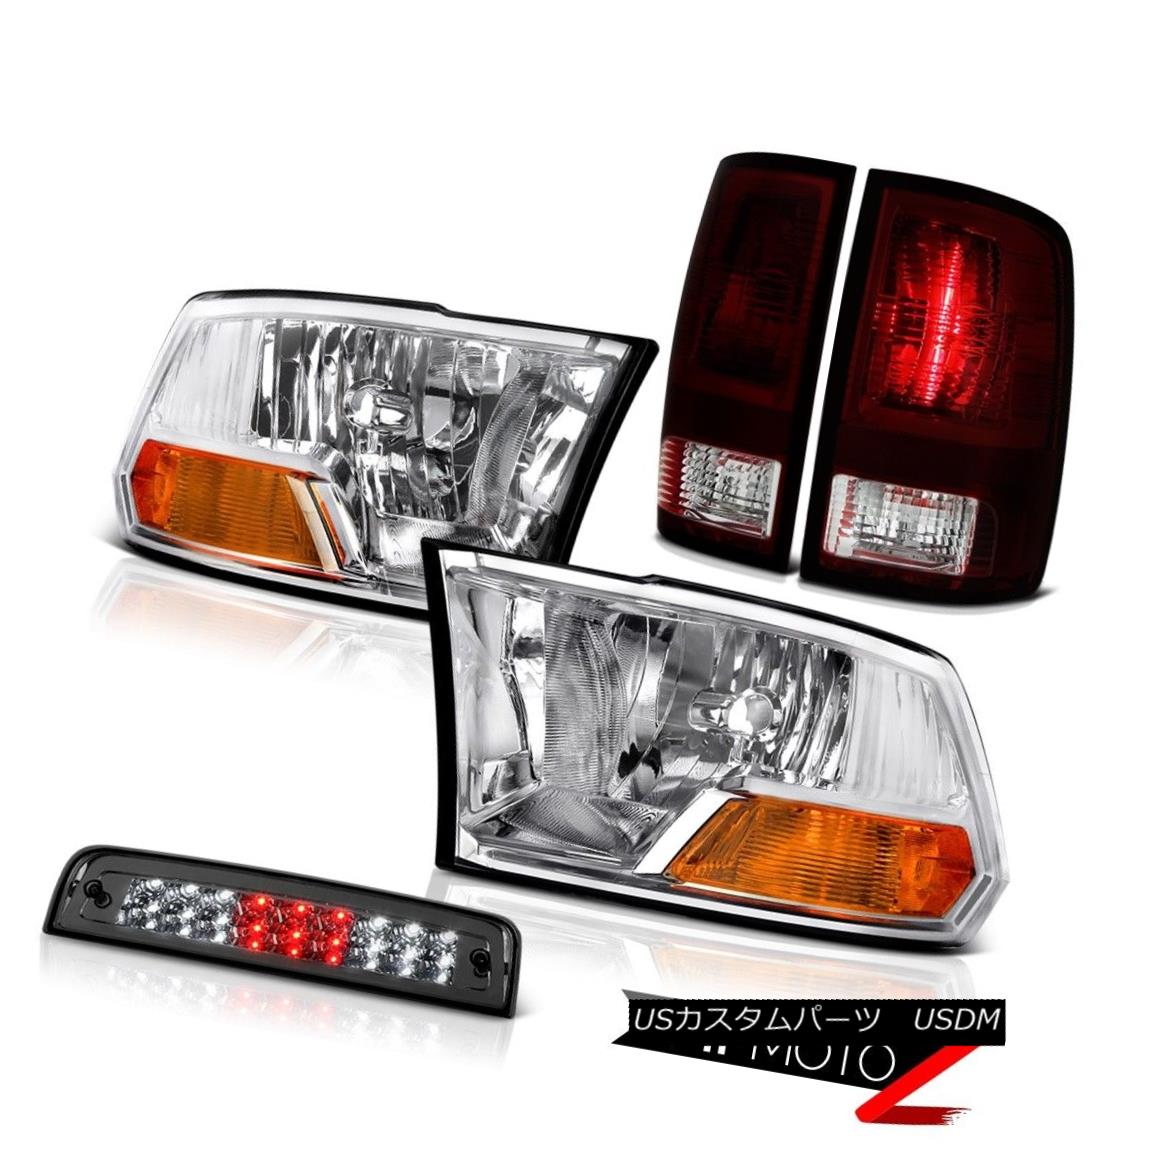 テールライト 09-18 Dodge Ram 1500 Laramie Third Brake Lamp Tail Lights Headlamps LED Assembly 09-18 Dodge Ram 1500 Laramie第3ブレーキランプテールライトヘッドランプLEDアセンブリ